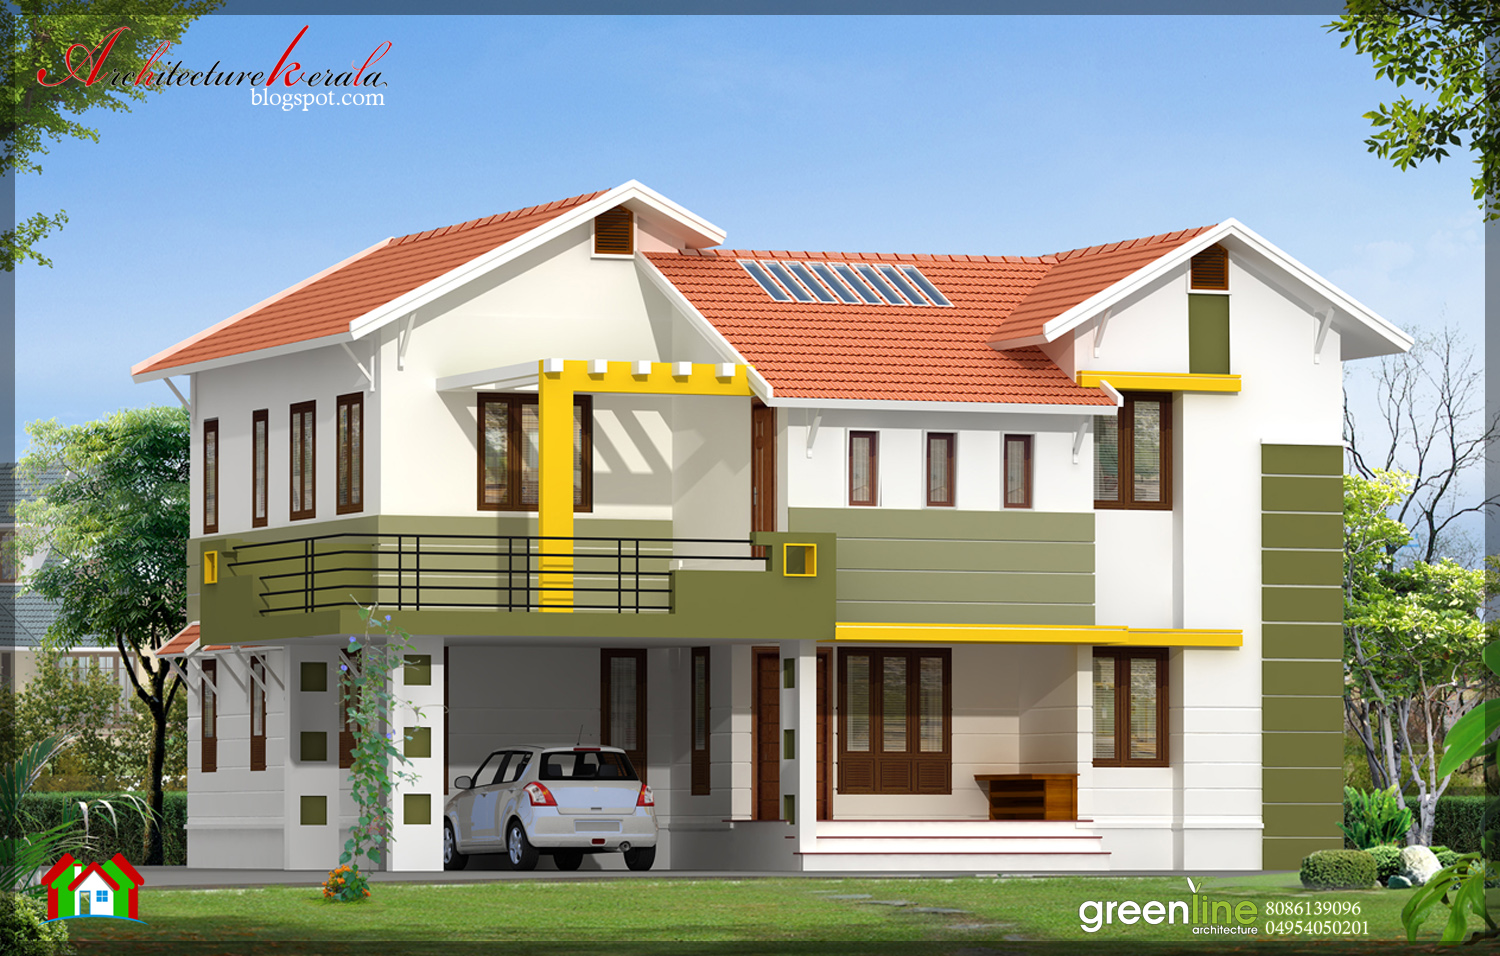 Architecture kerala 4 bhk contemporary style indian home Simple house designs and plans